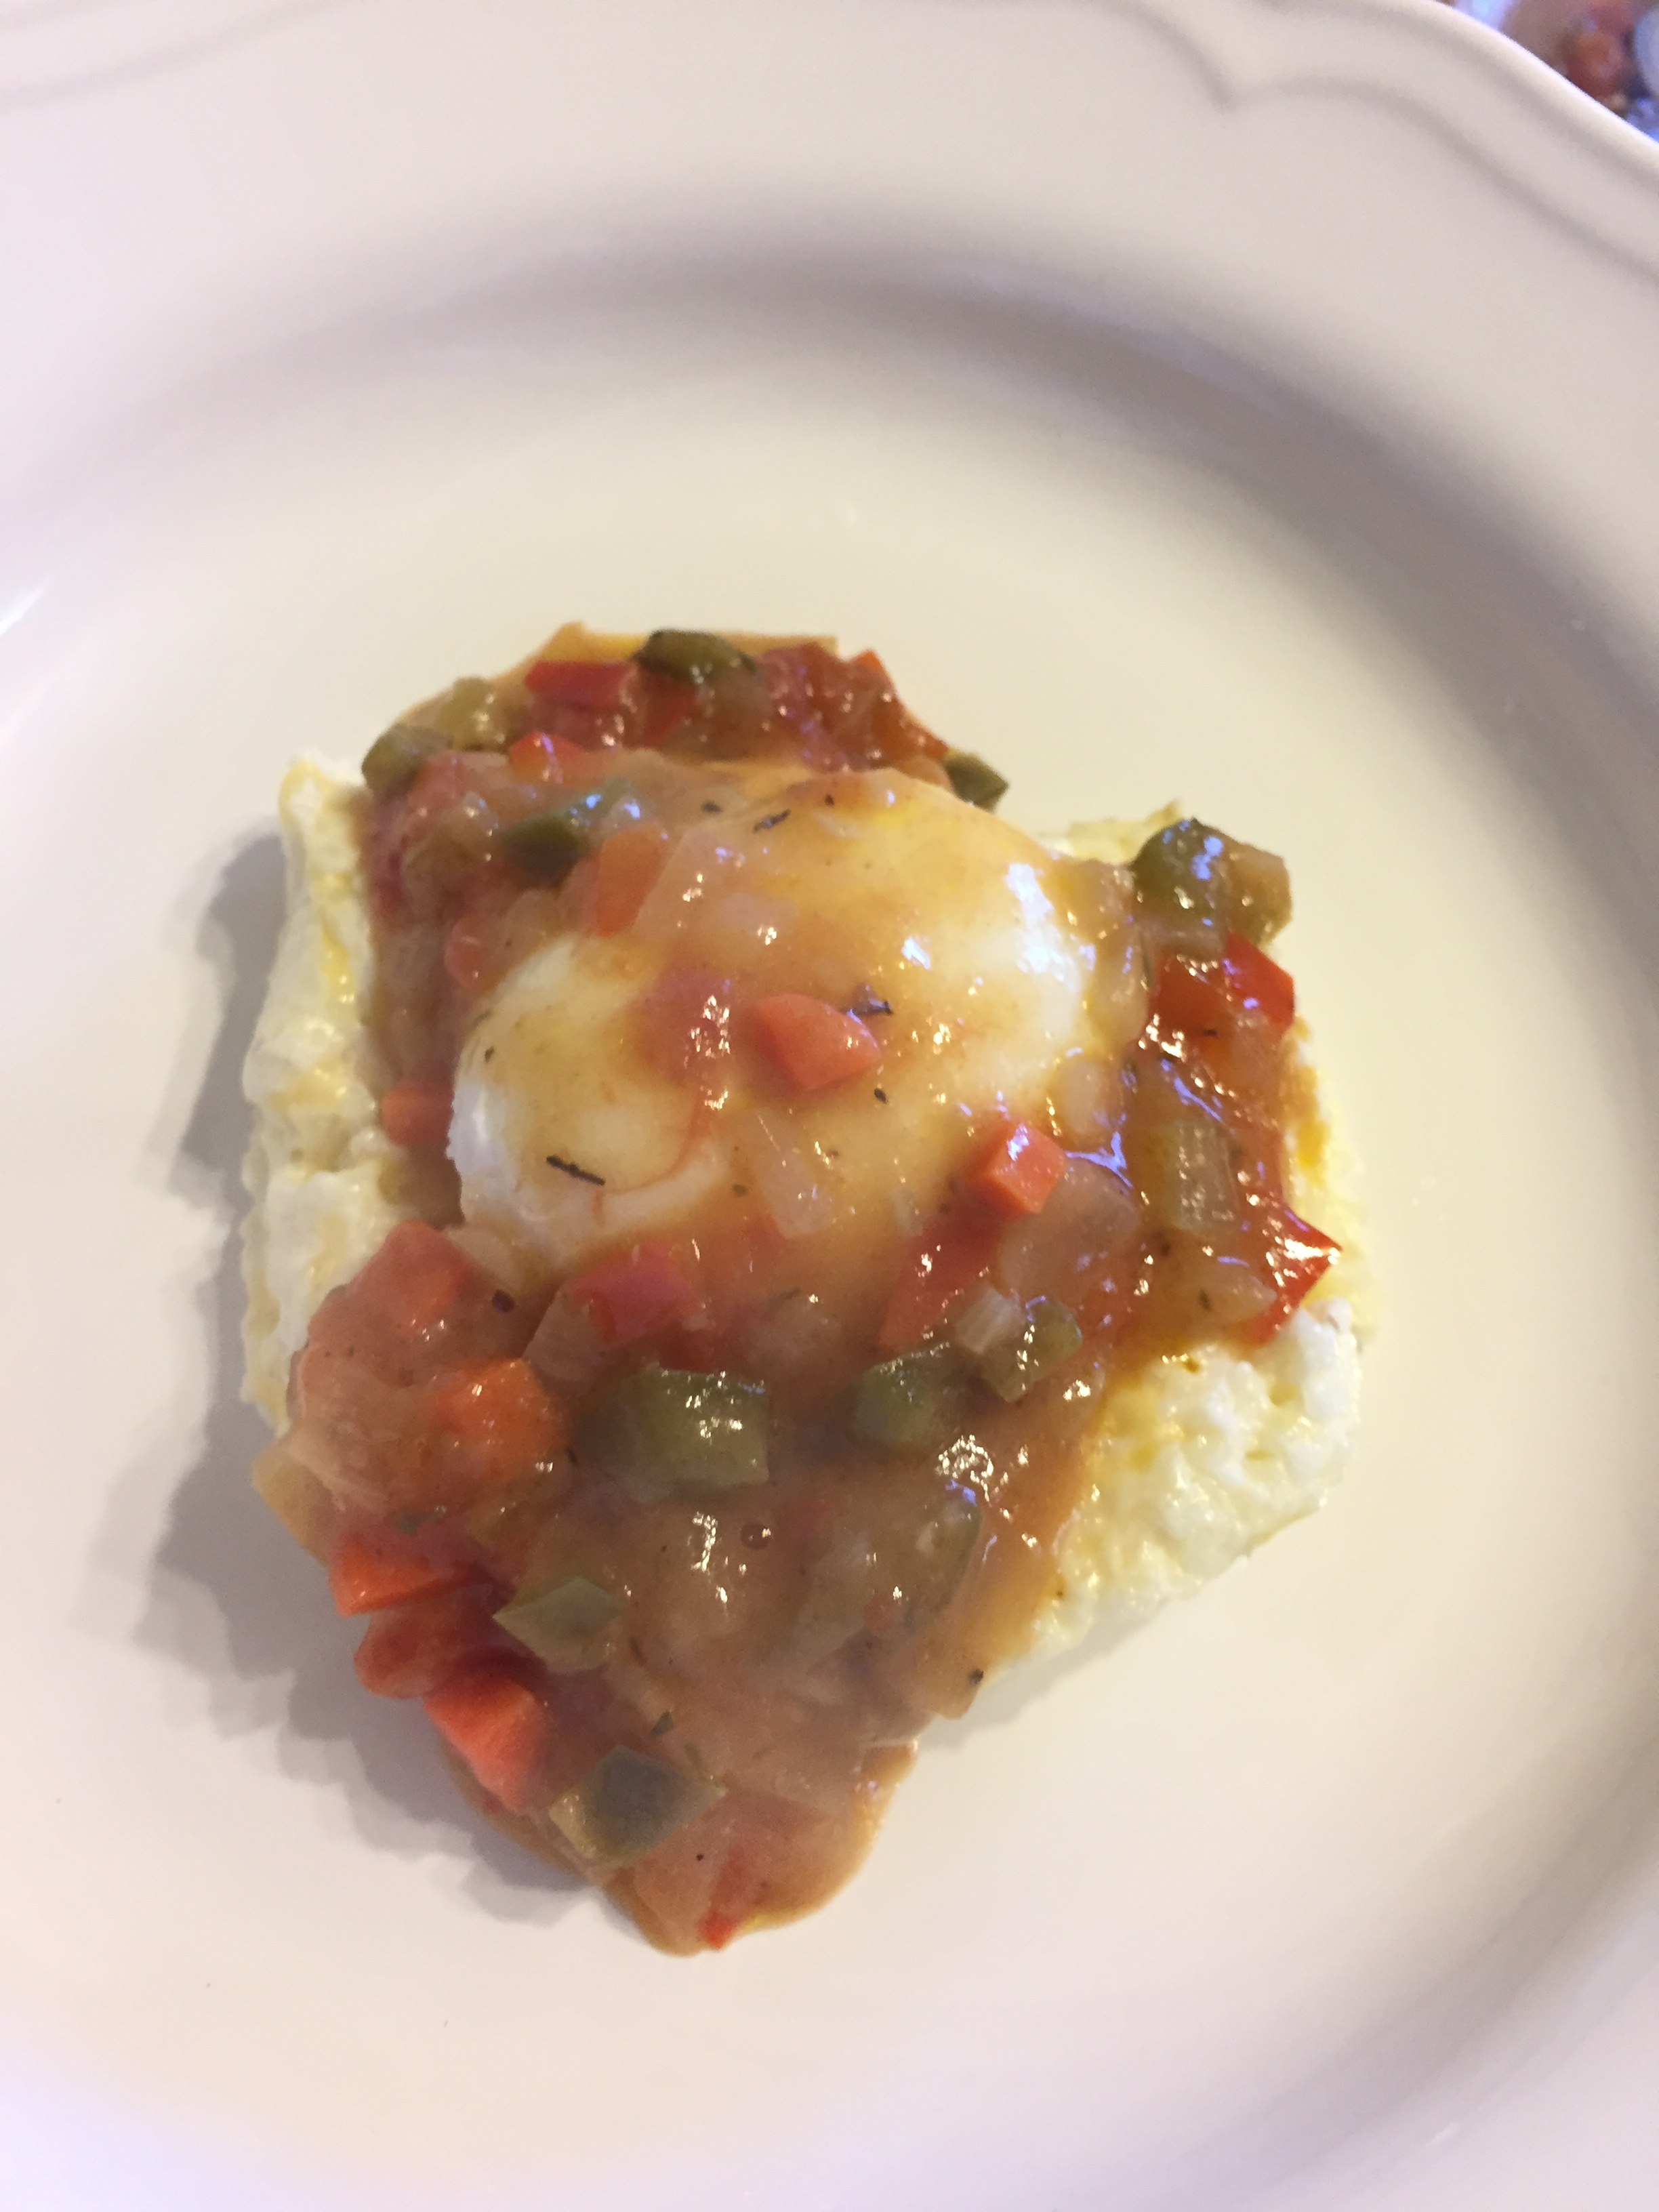 Grtis, Creole Sauce and Poached Egg.jpg